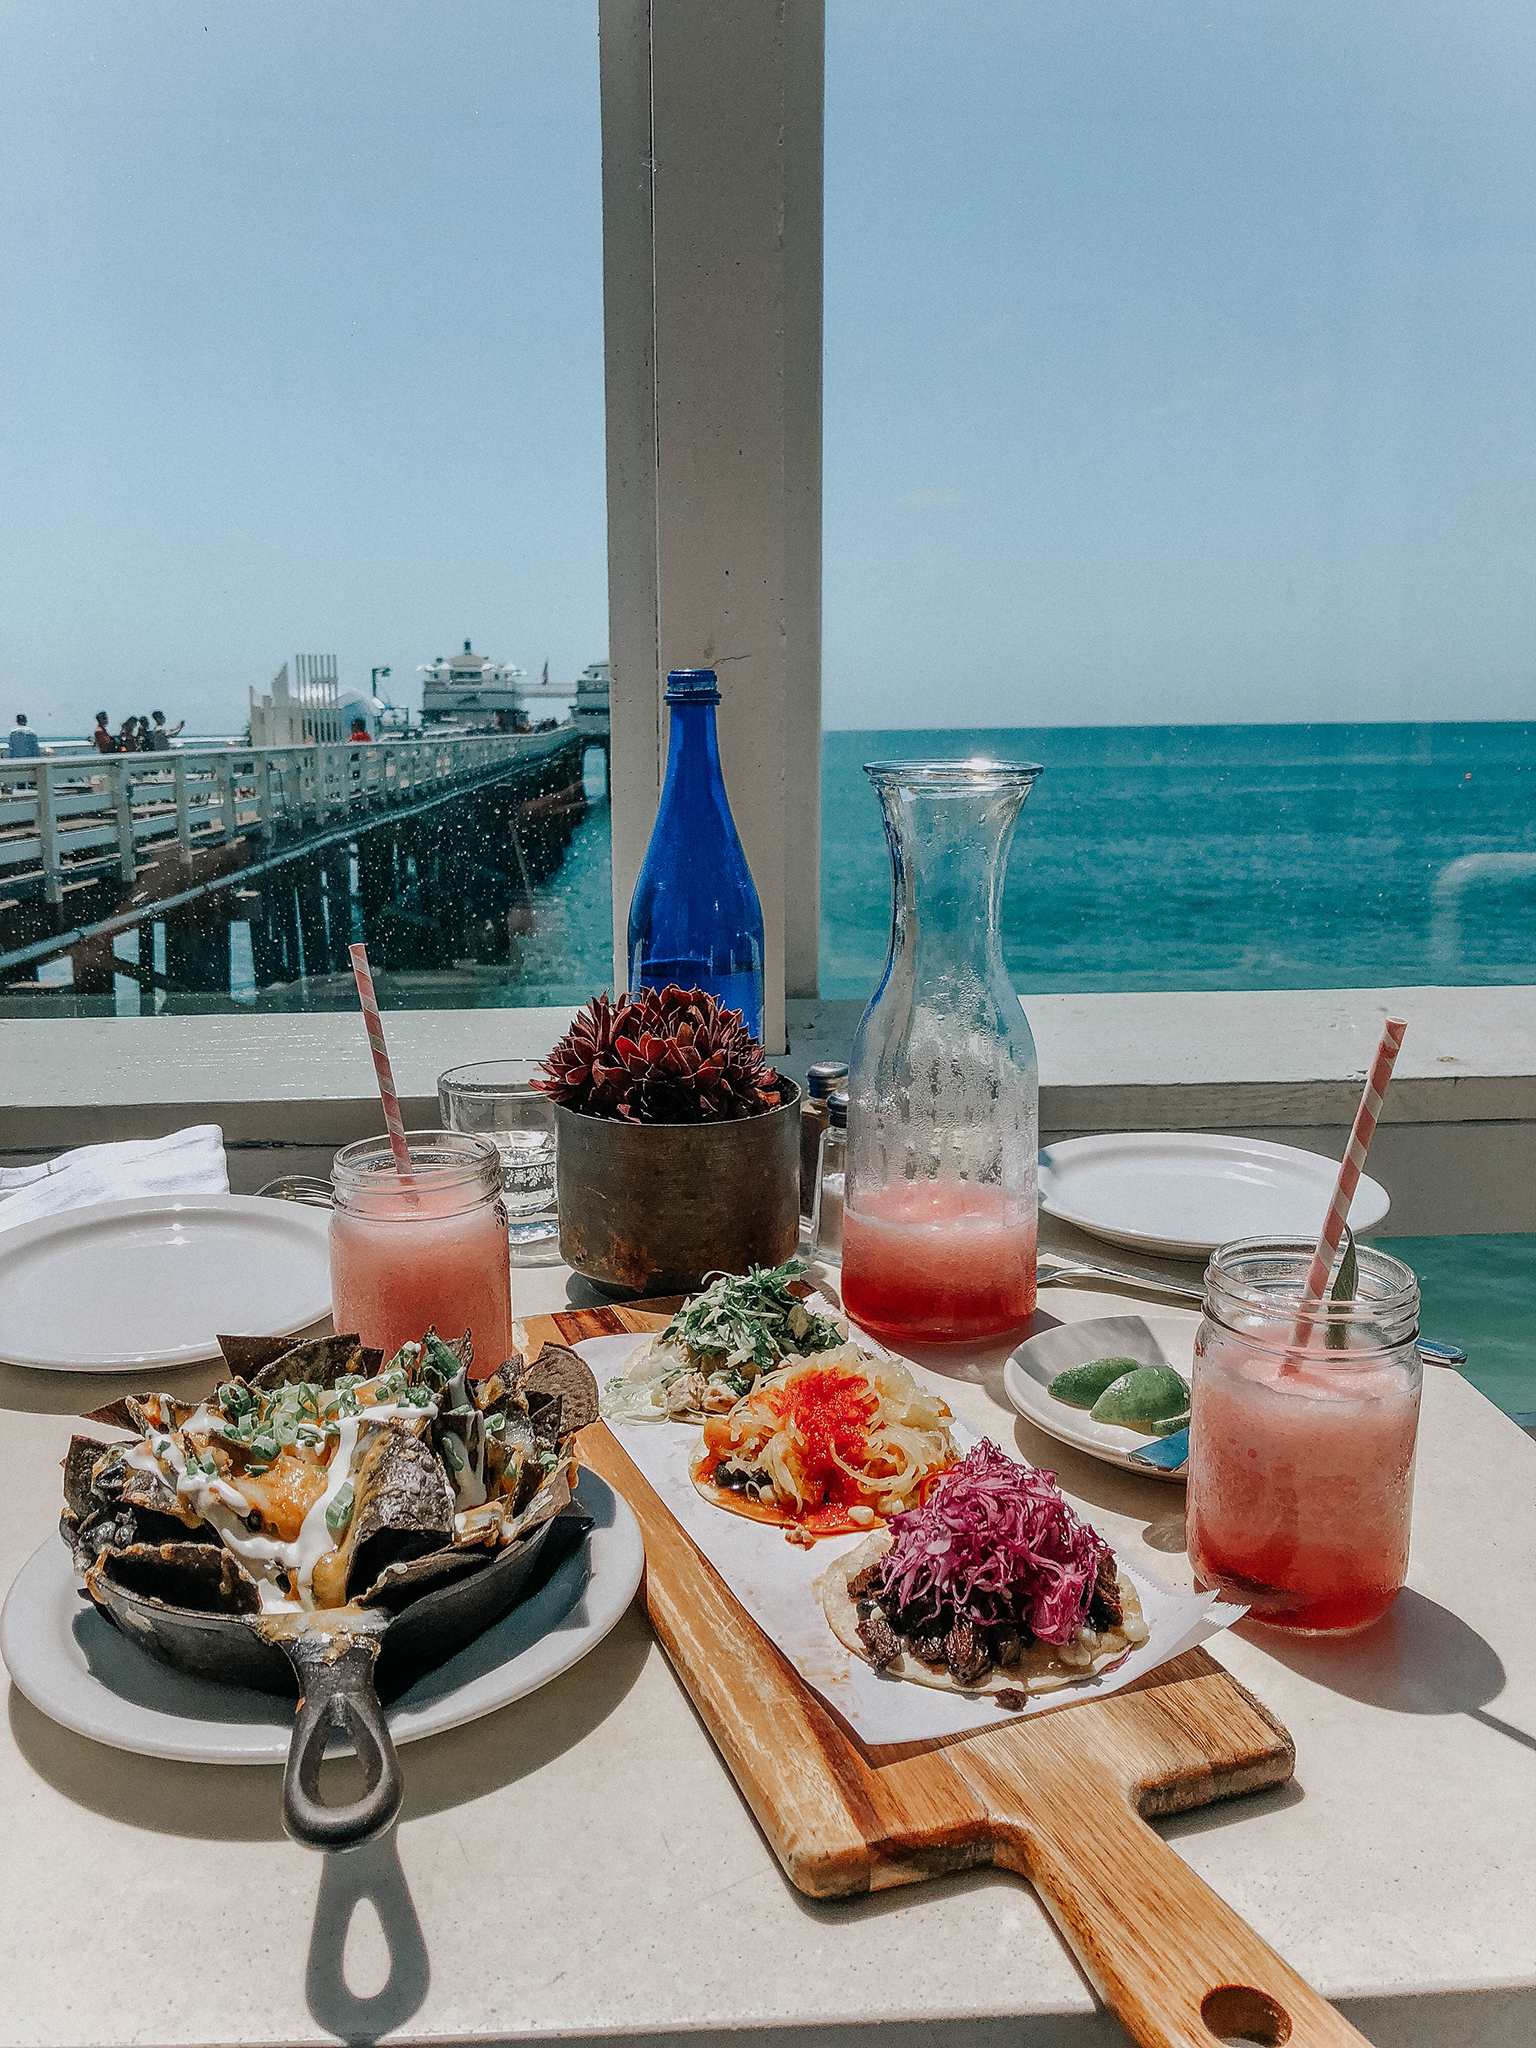 food on the table with the view of the ocean for perfect day in malibu